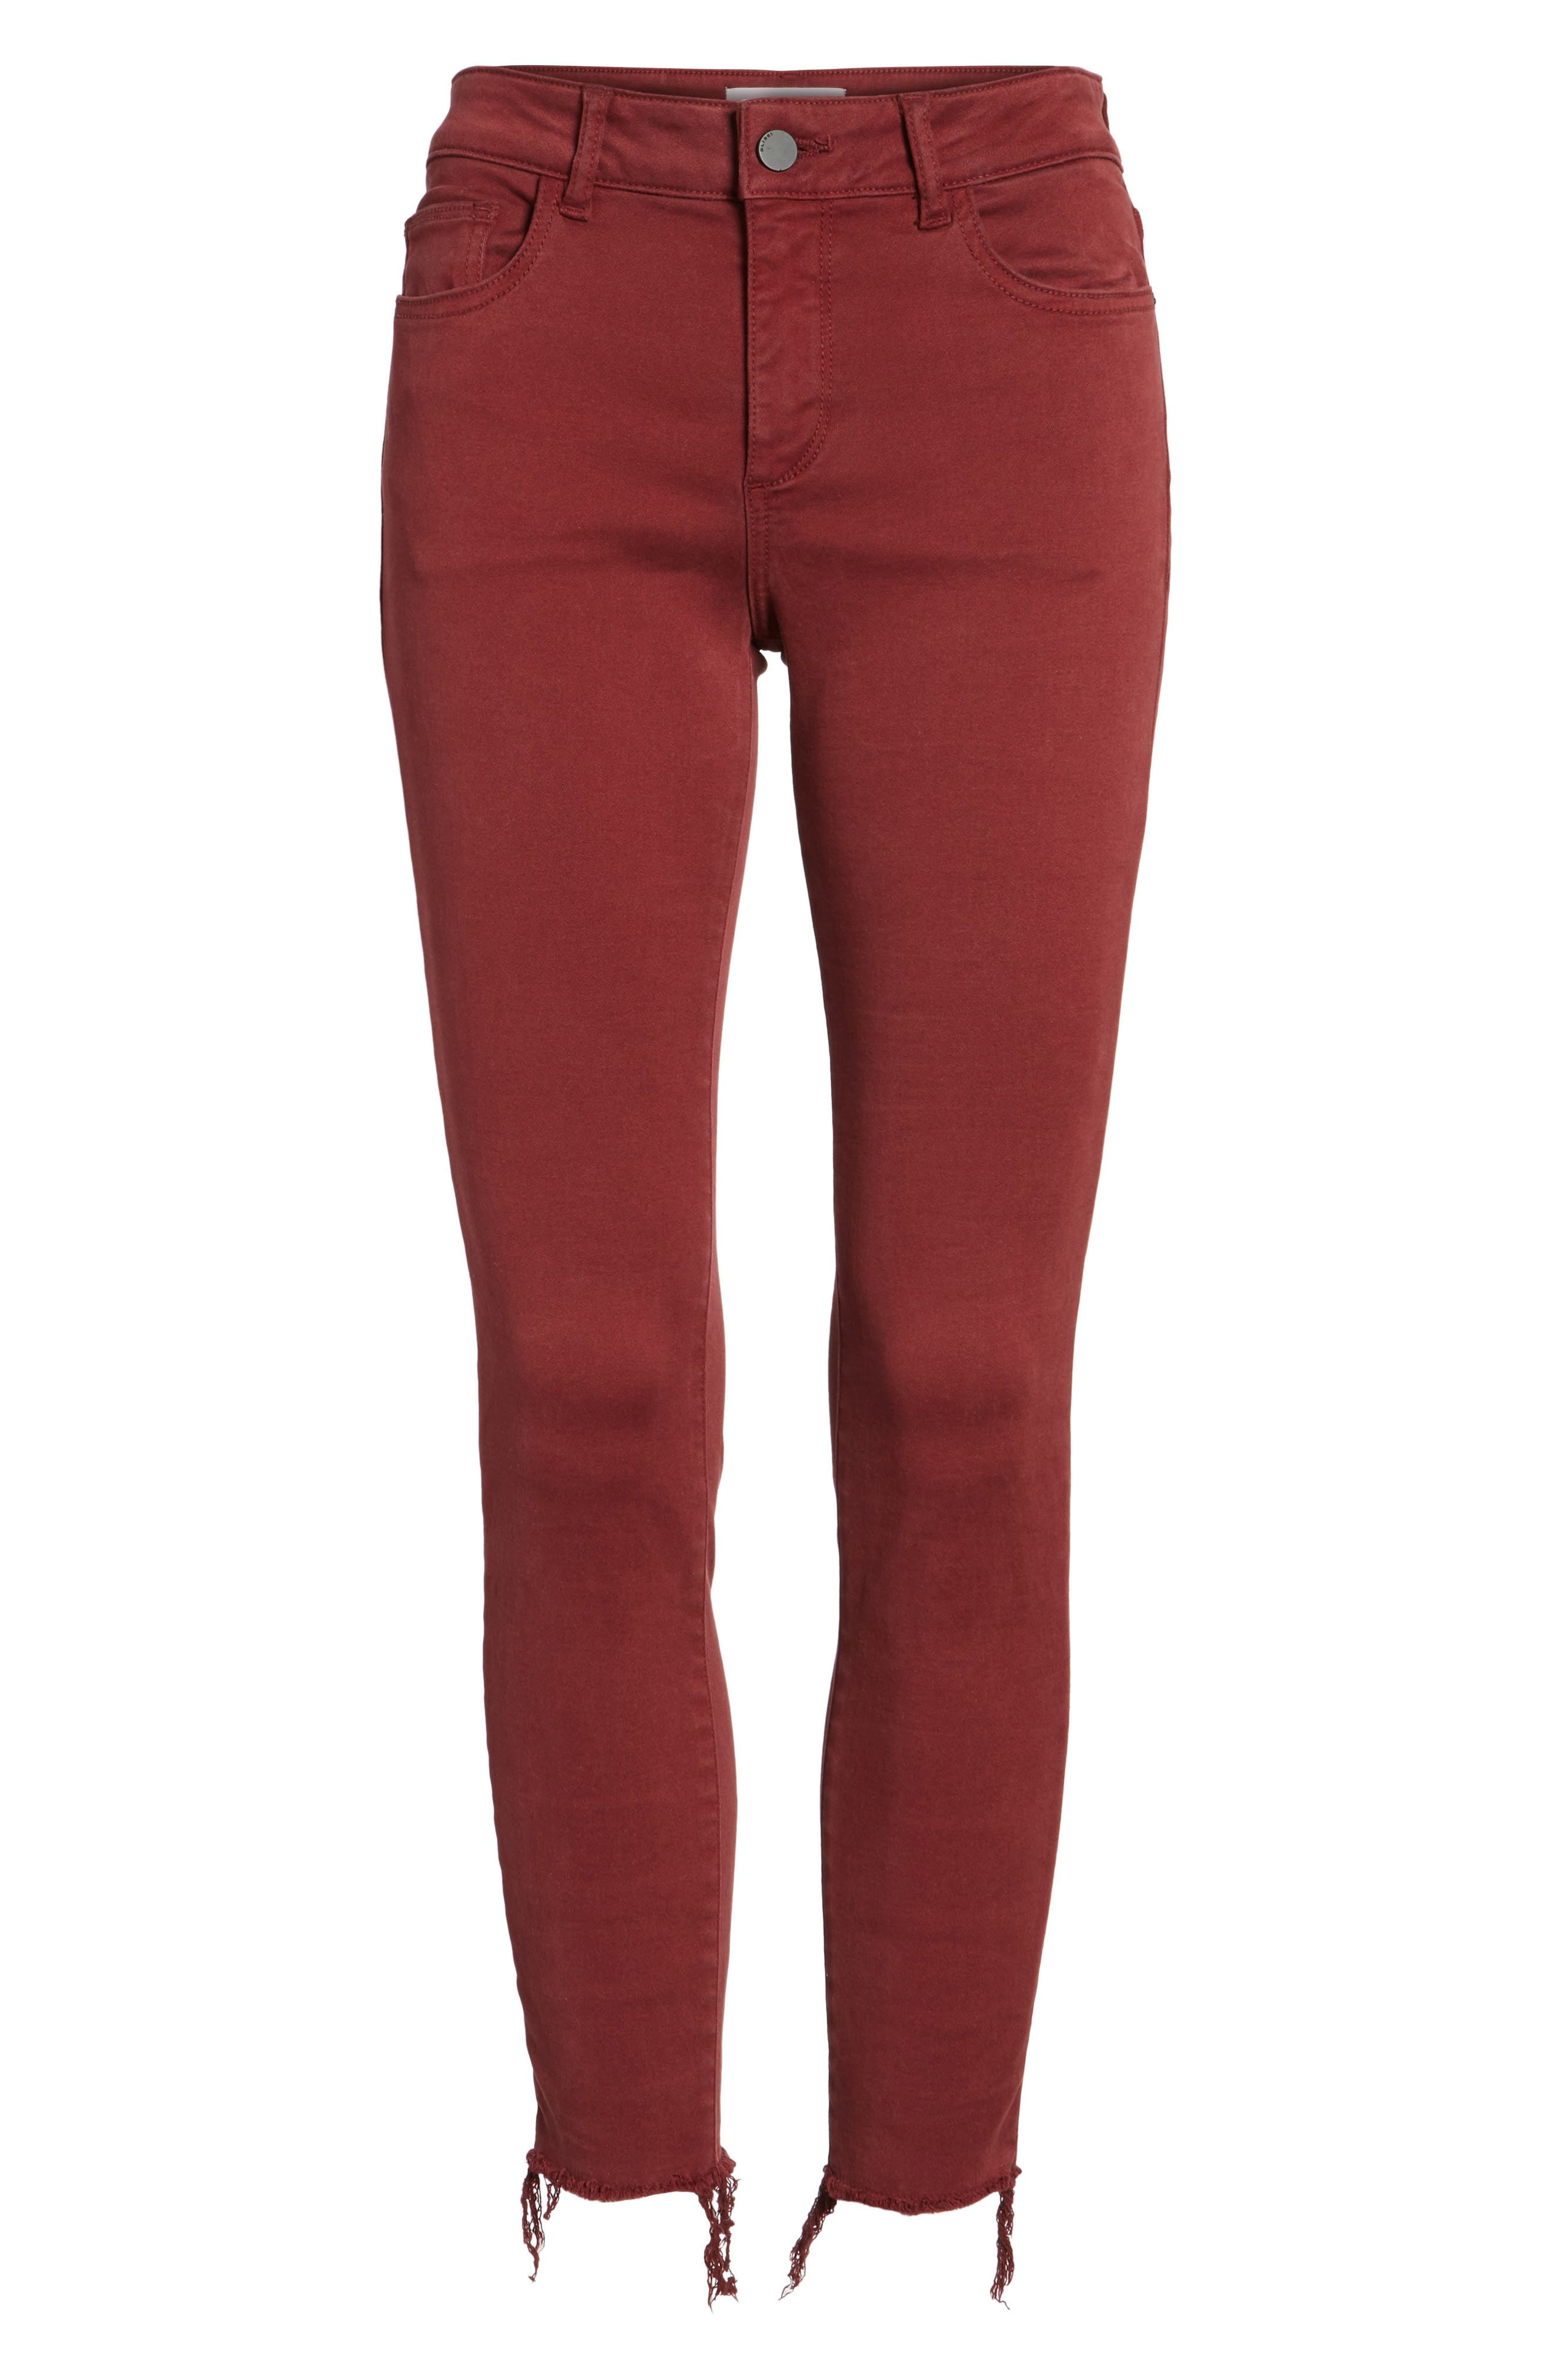 Margaux Instasculpt Ankle Skinny Jeans,                             Alternate thumbnail 6, color,                             Tawny Port